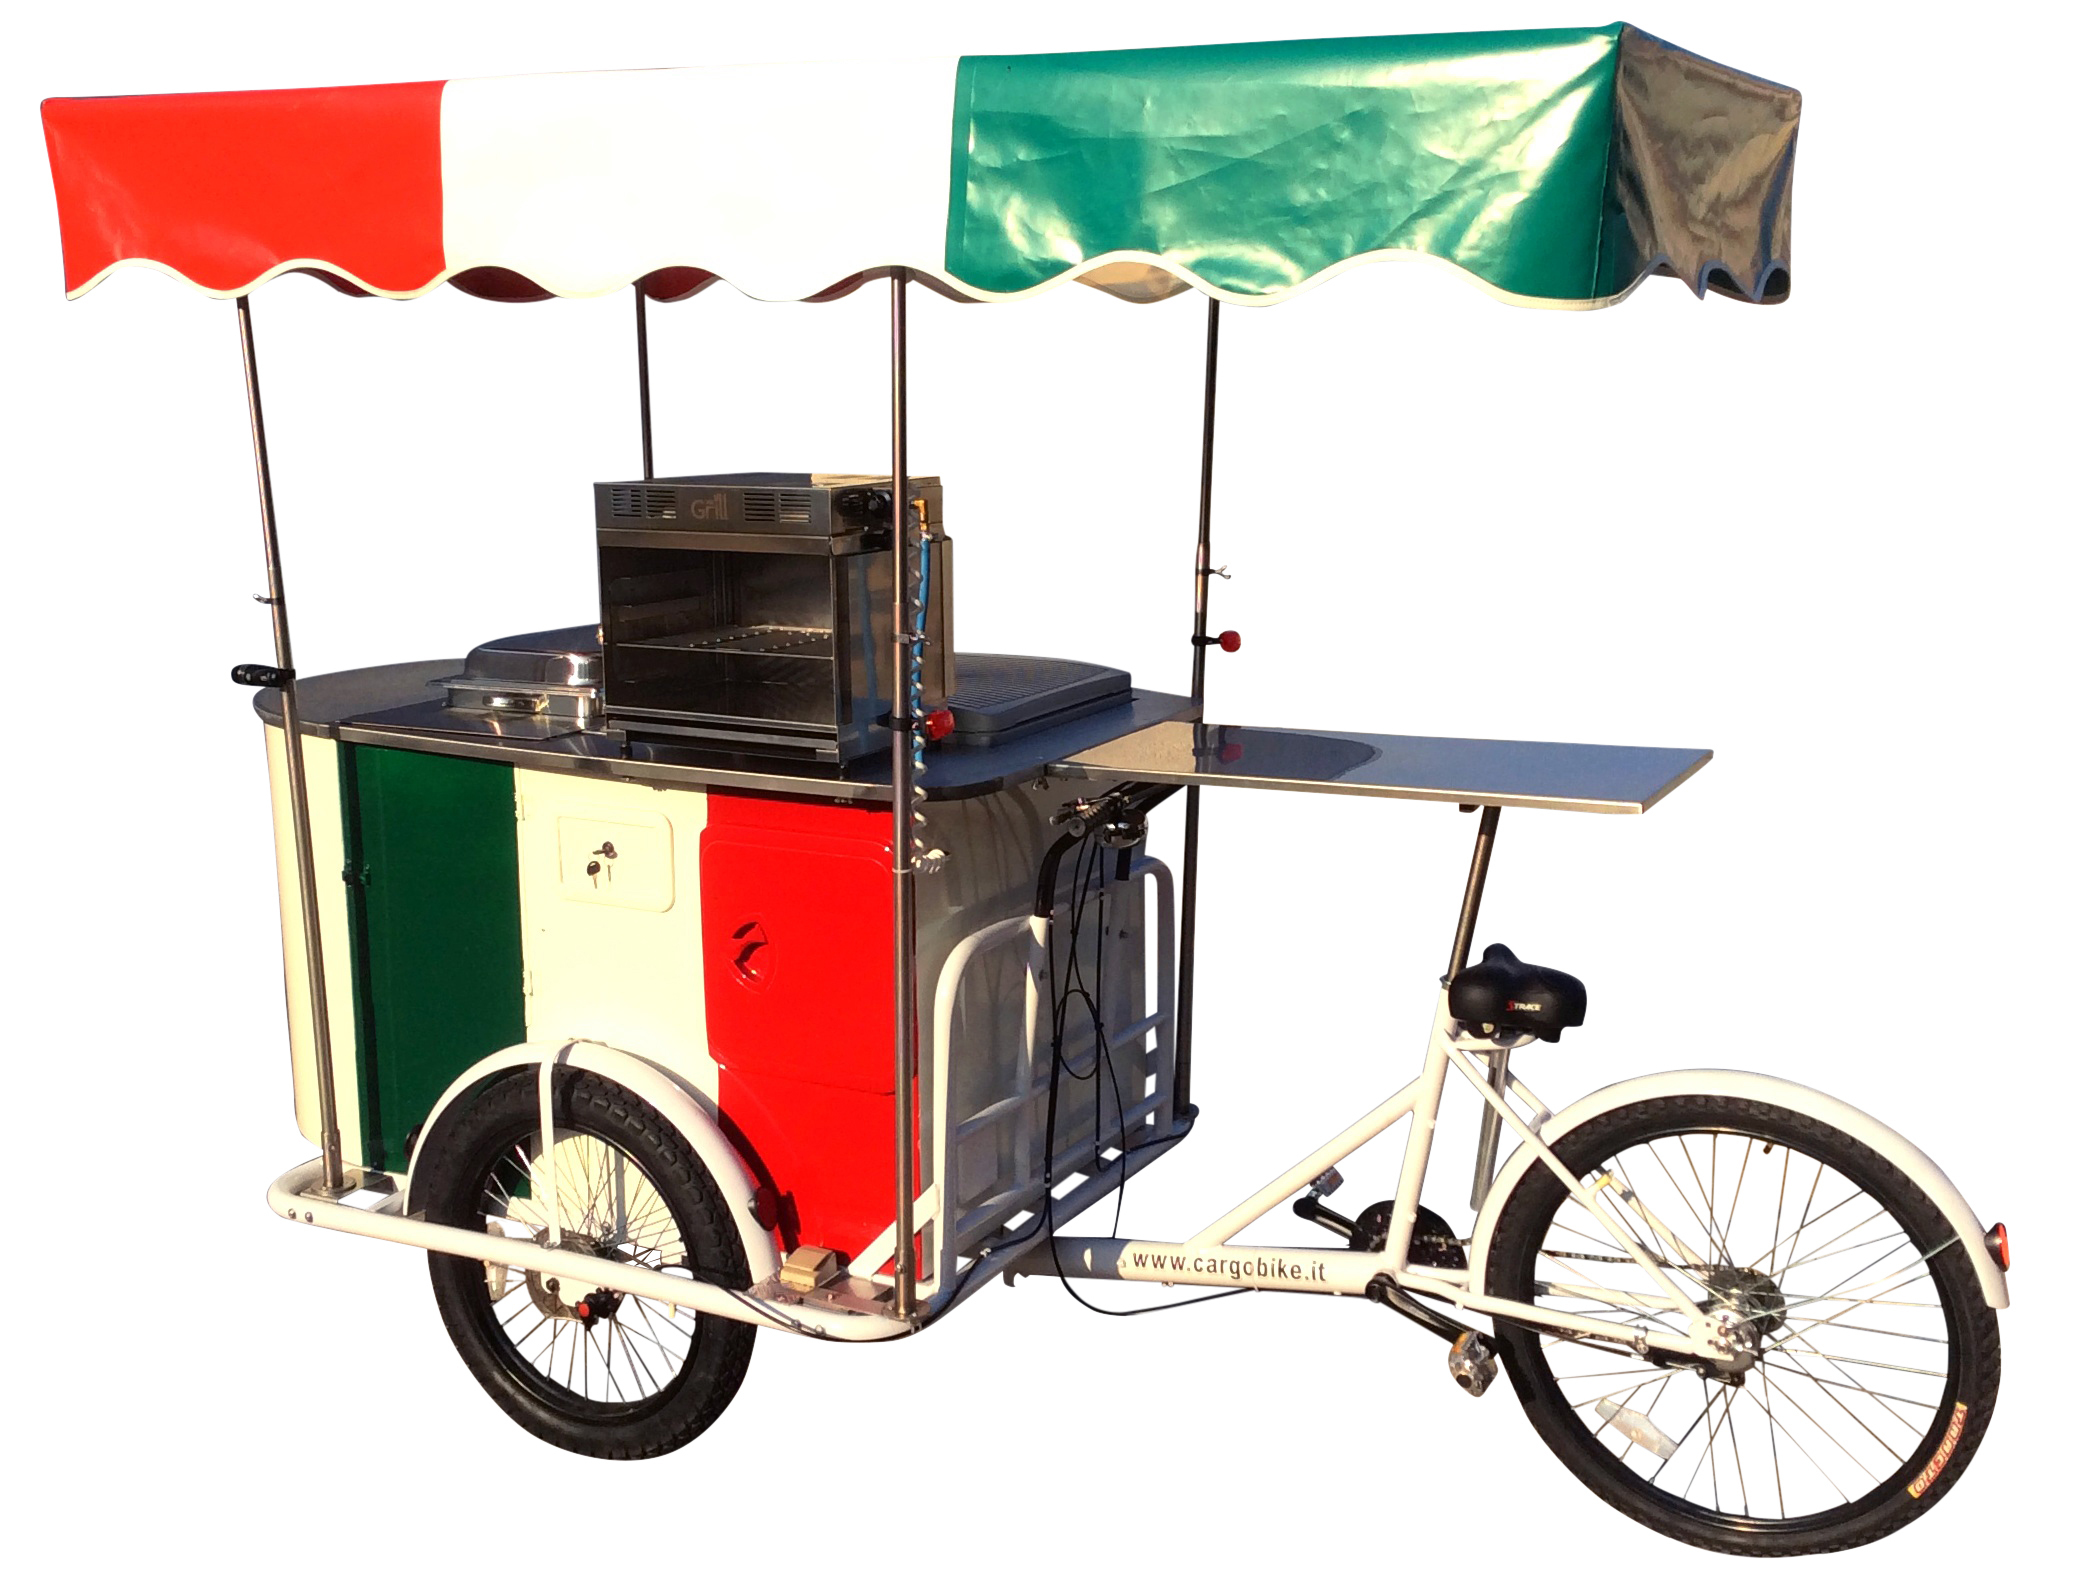 STREET_FOOD_GRILL_REVIVAL_TRICICLO_CARGO_BIKE_25